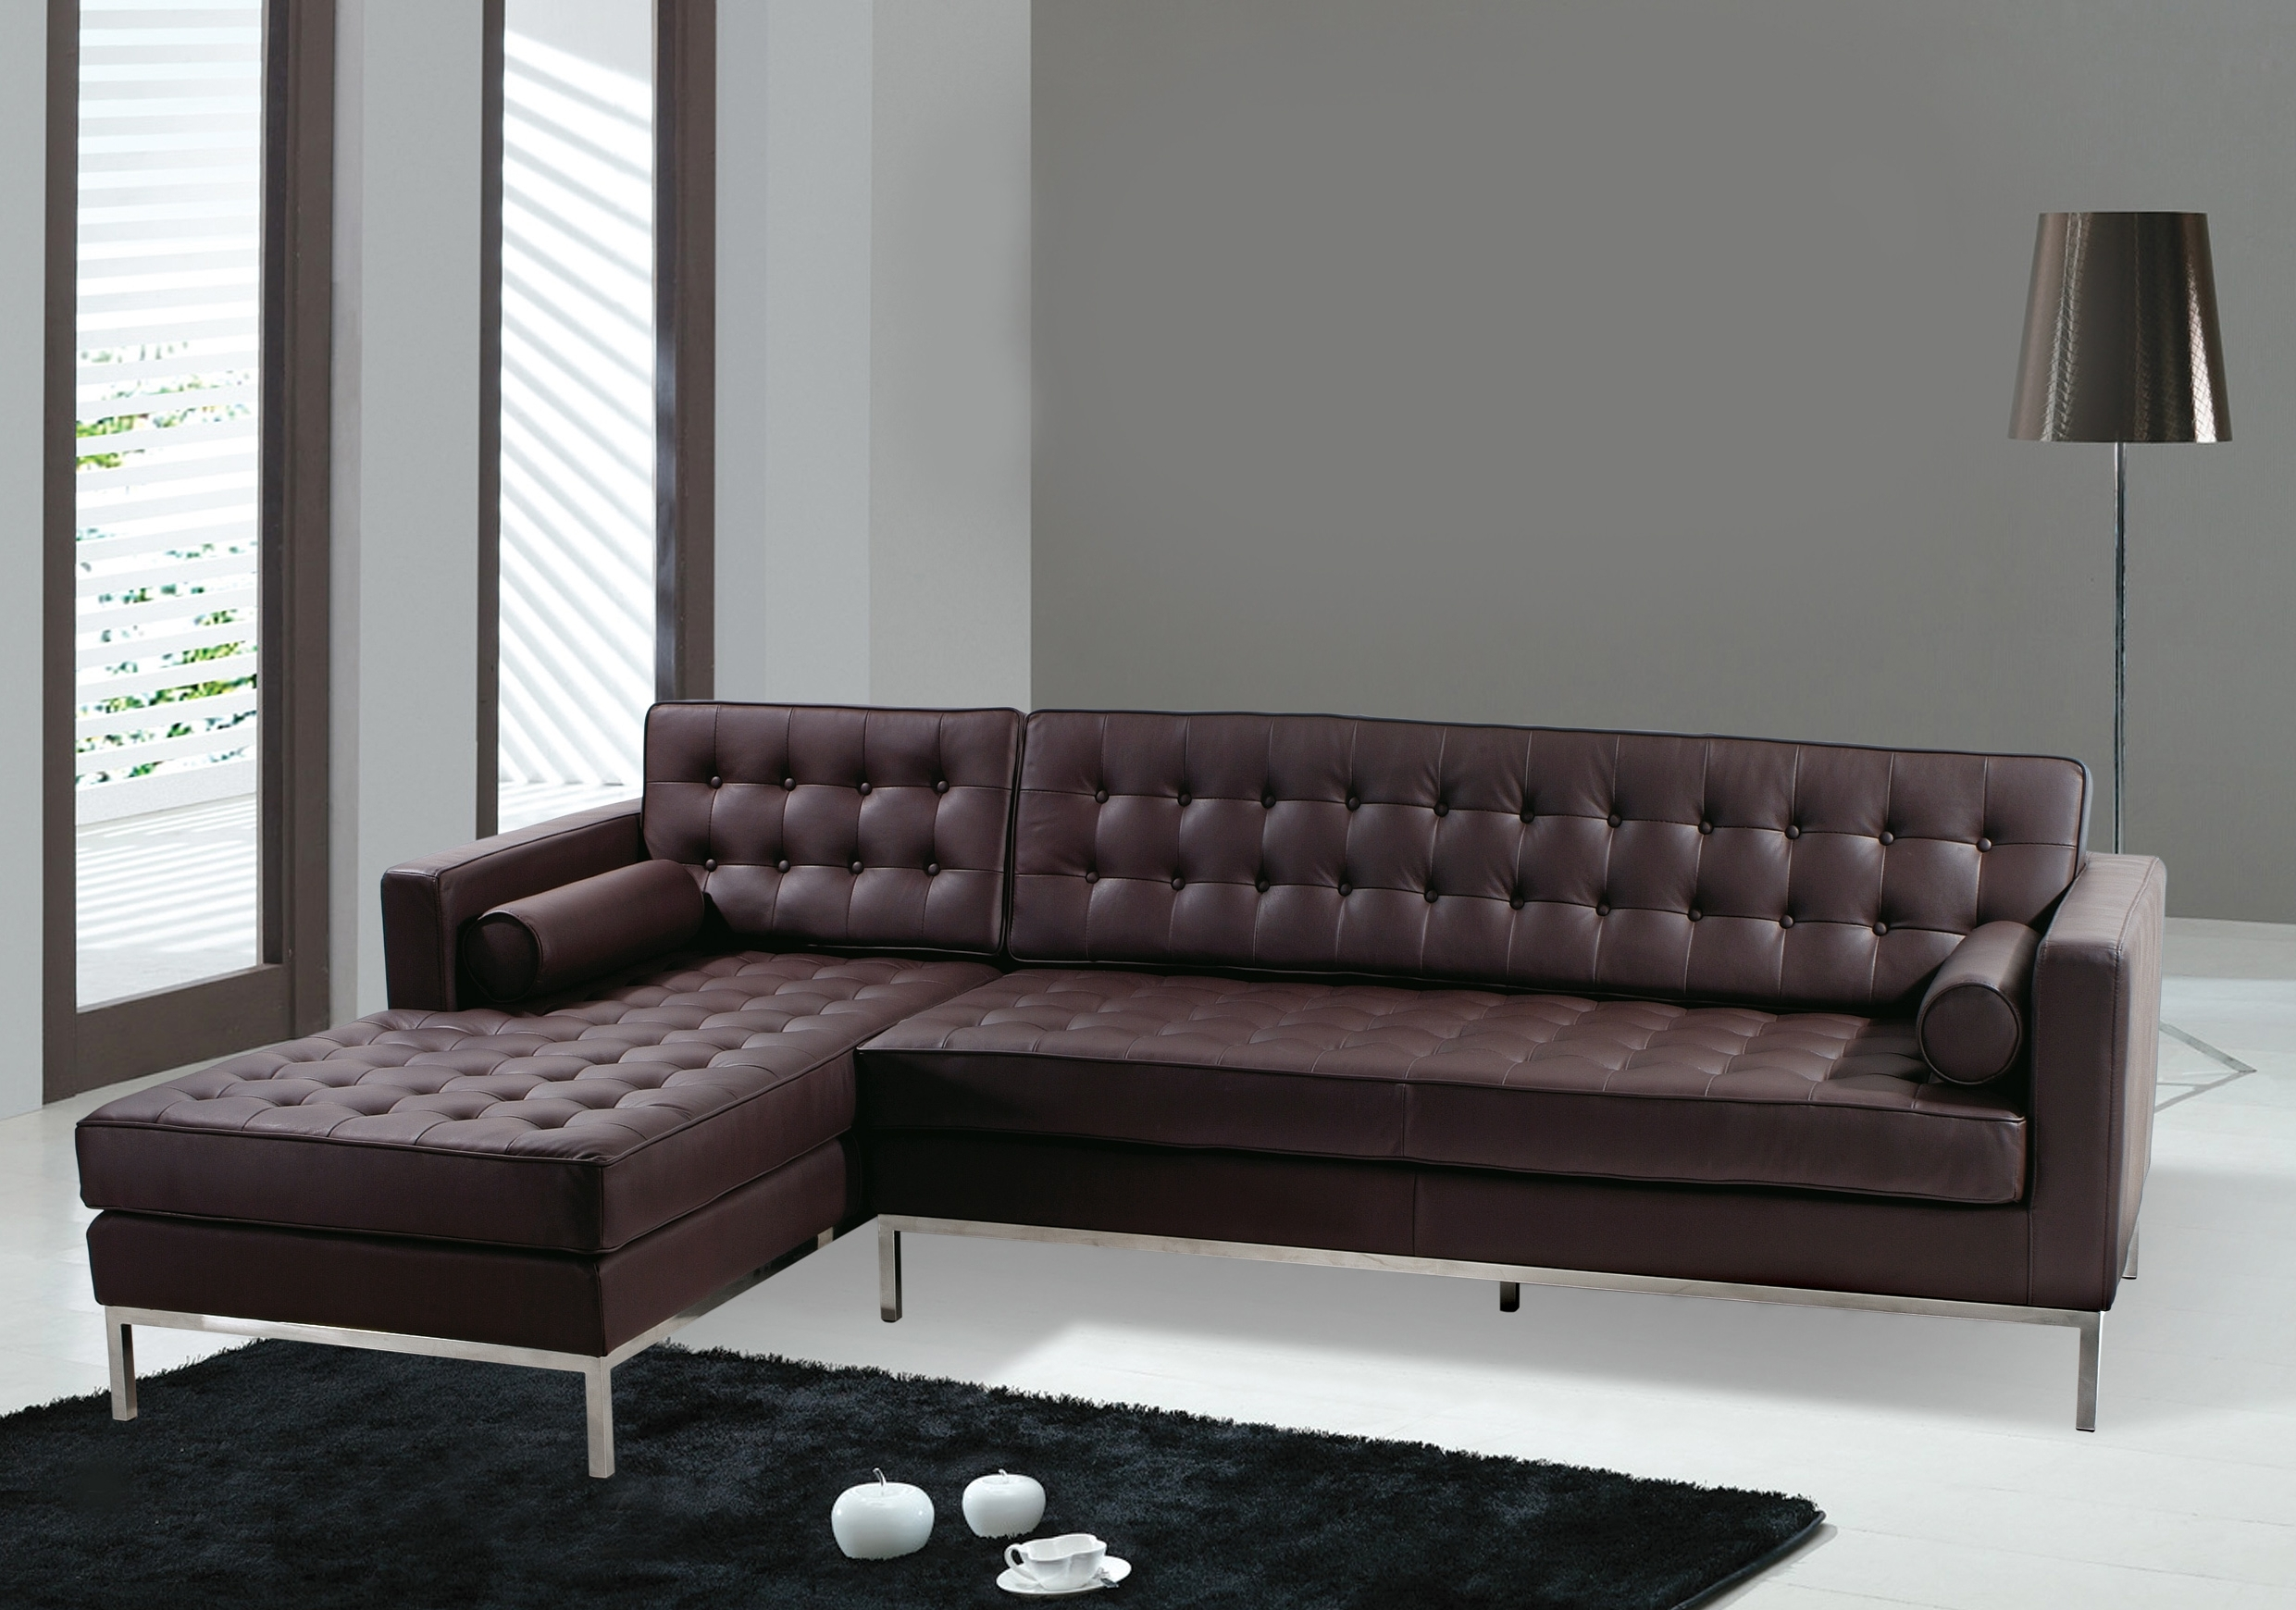 Stunning Brown Leather Sectional Sofa Clearance 39 For Your Pertaining To Latest Jcpenney Sectional Sofas (View 11 of 15)